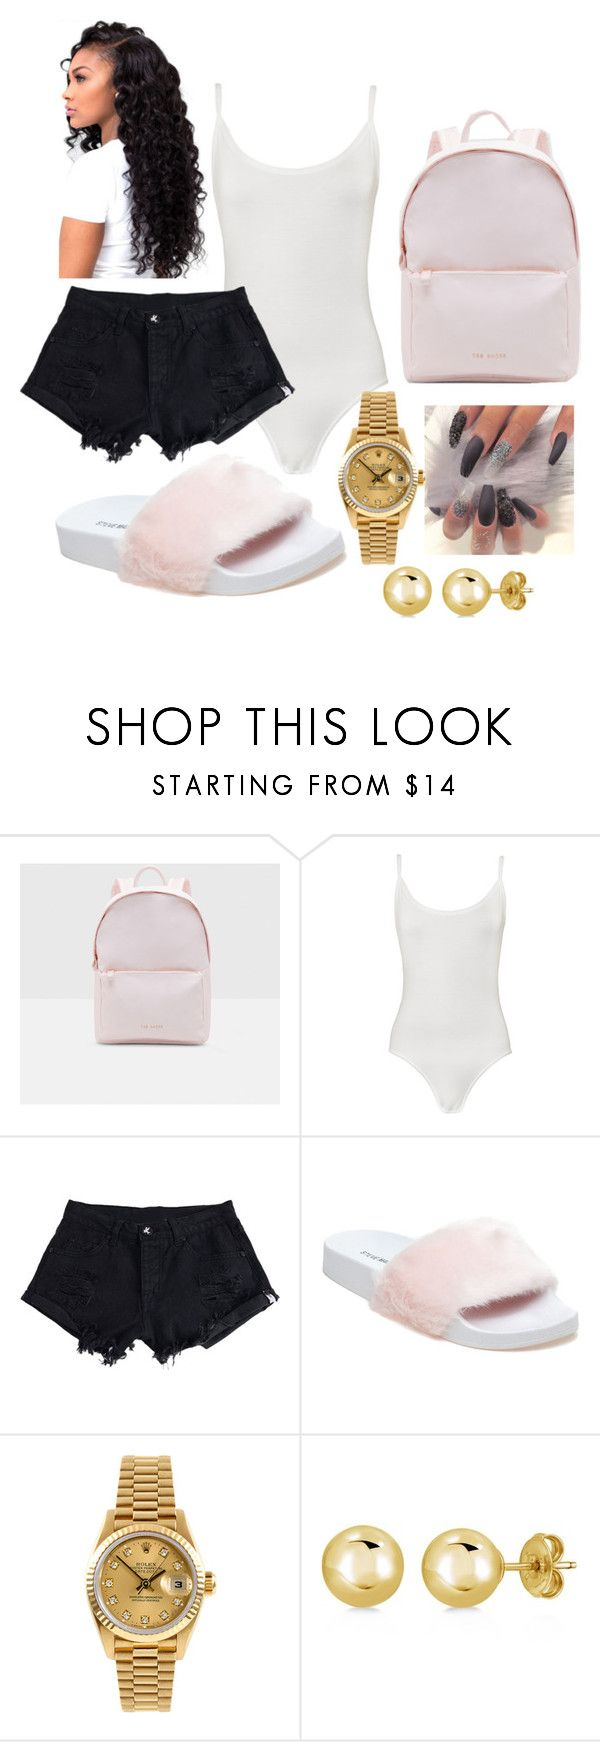 """""""Untitled #3"""" by benzo-19 ❤ liked on Polyvore featuring Ted Baker, WearAll, WithChic, Steve Madden, Rolex and BERRICLE"""